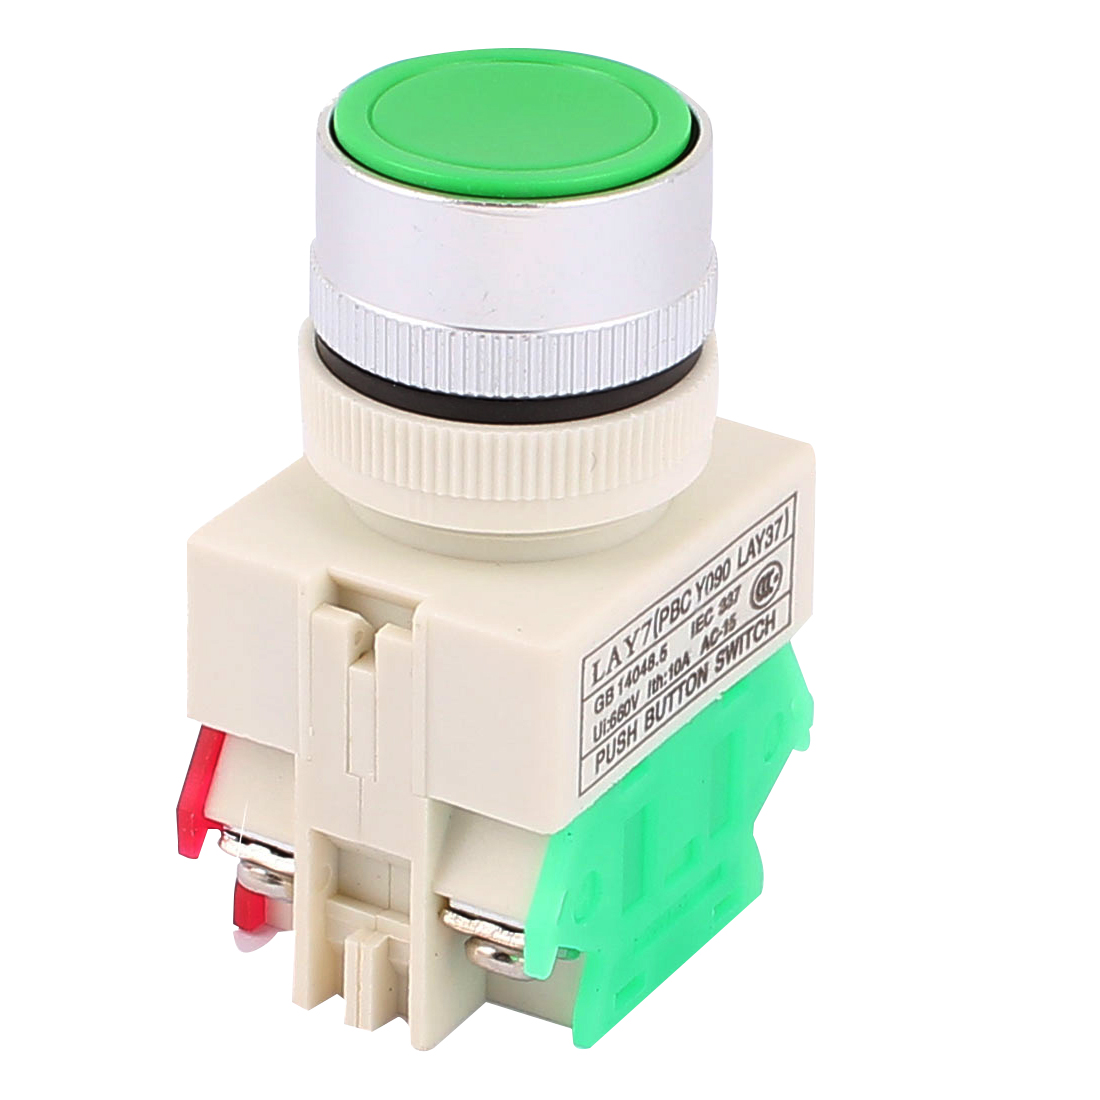 AC 660V 10A 24mm Thread Dia NO DPST Momentary Emergency Stop Push Button Switch Green